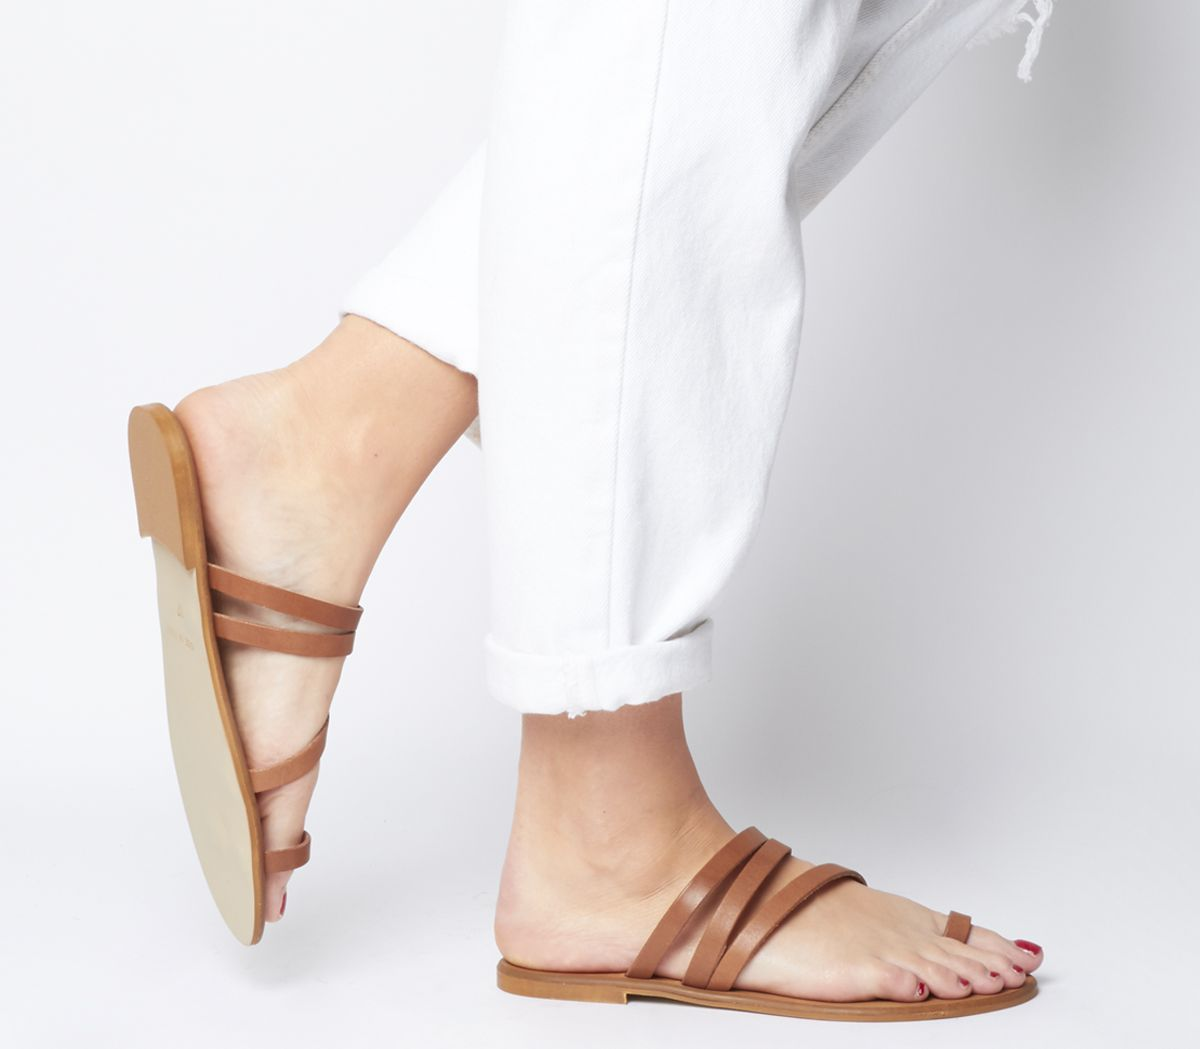 Seville Toe Loop Mules   Wide Fit by Office